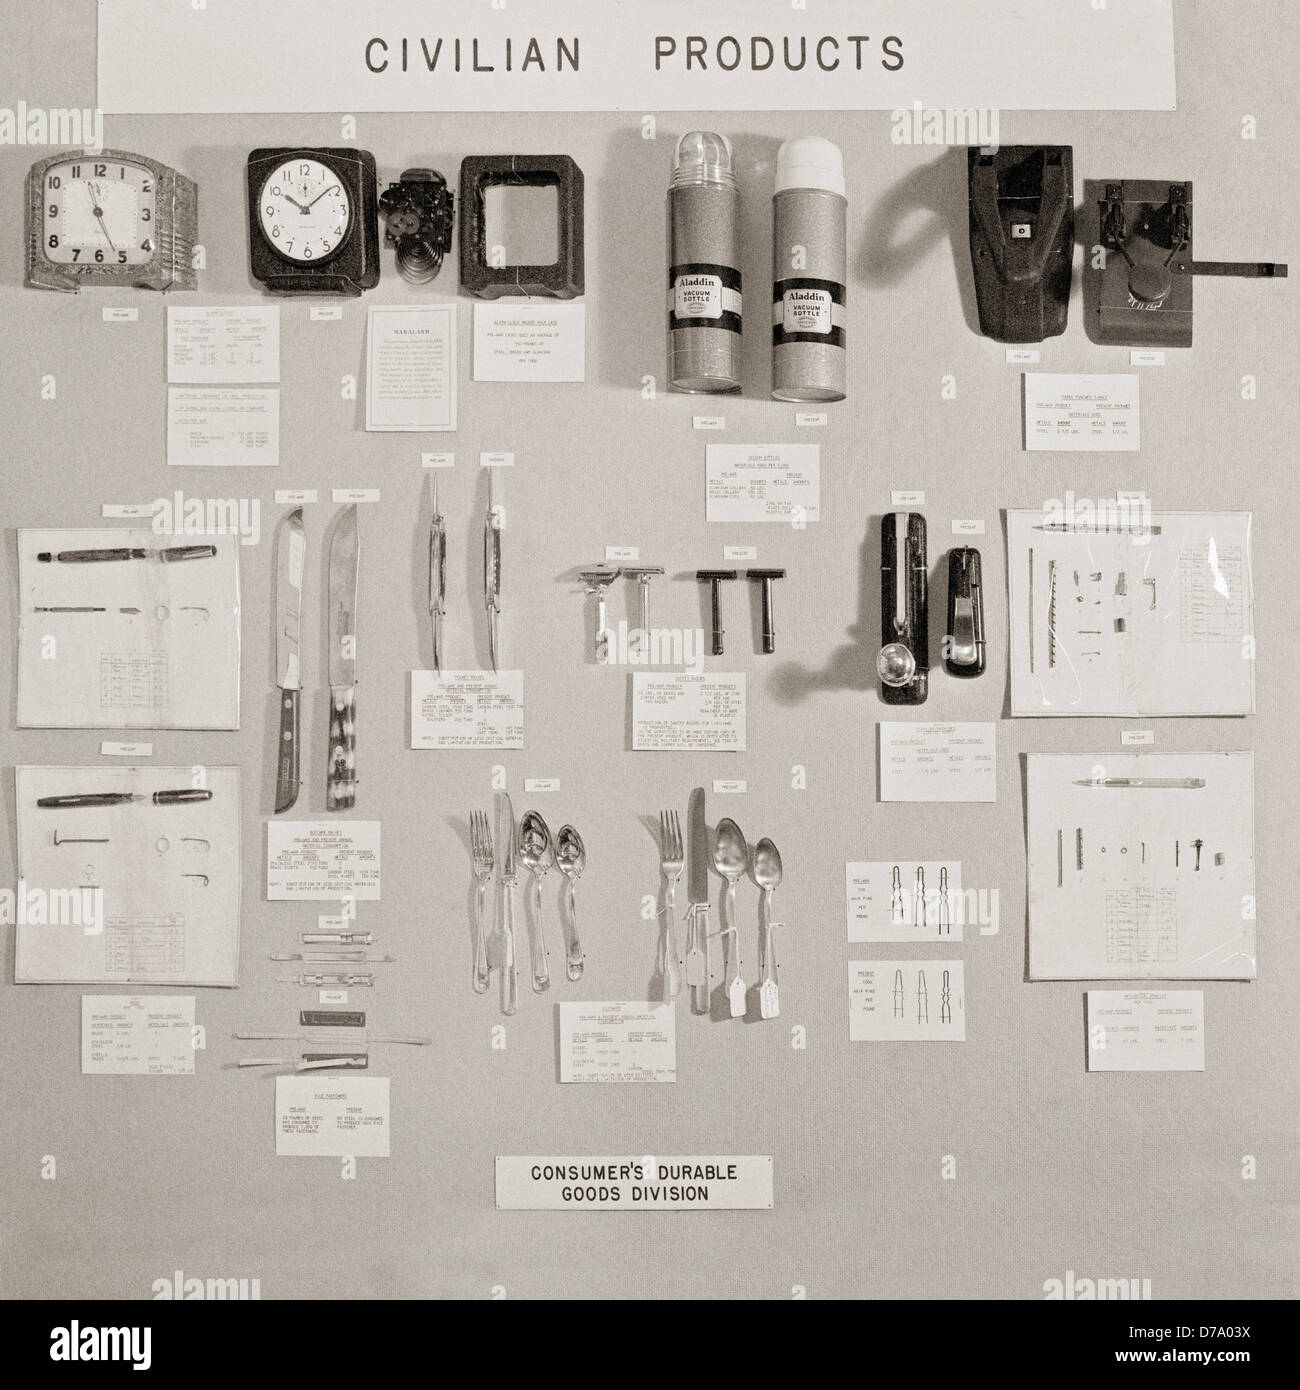 Pre-War Wartime Civilian Products - Stock Image